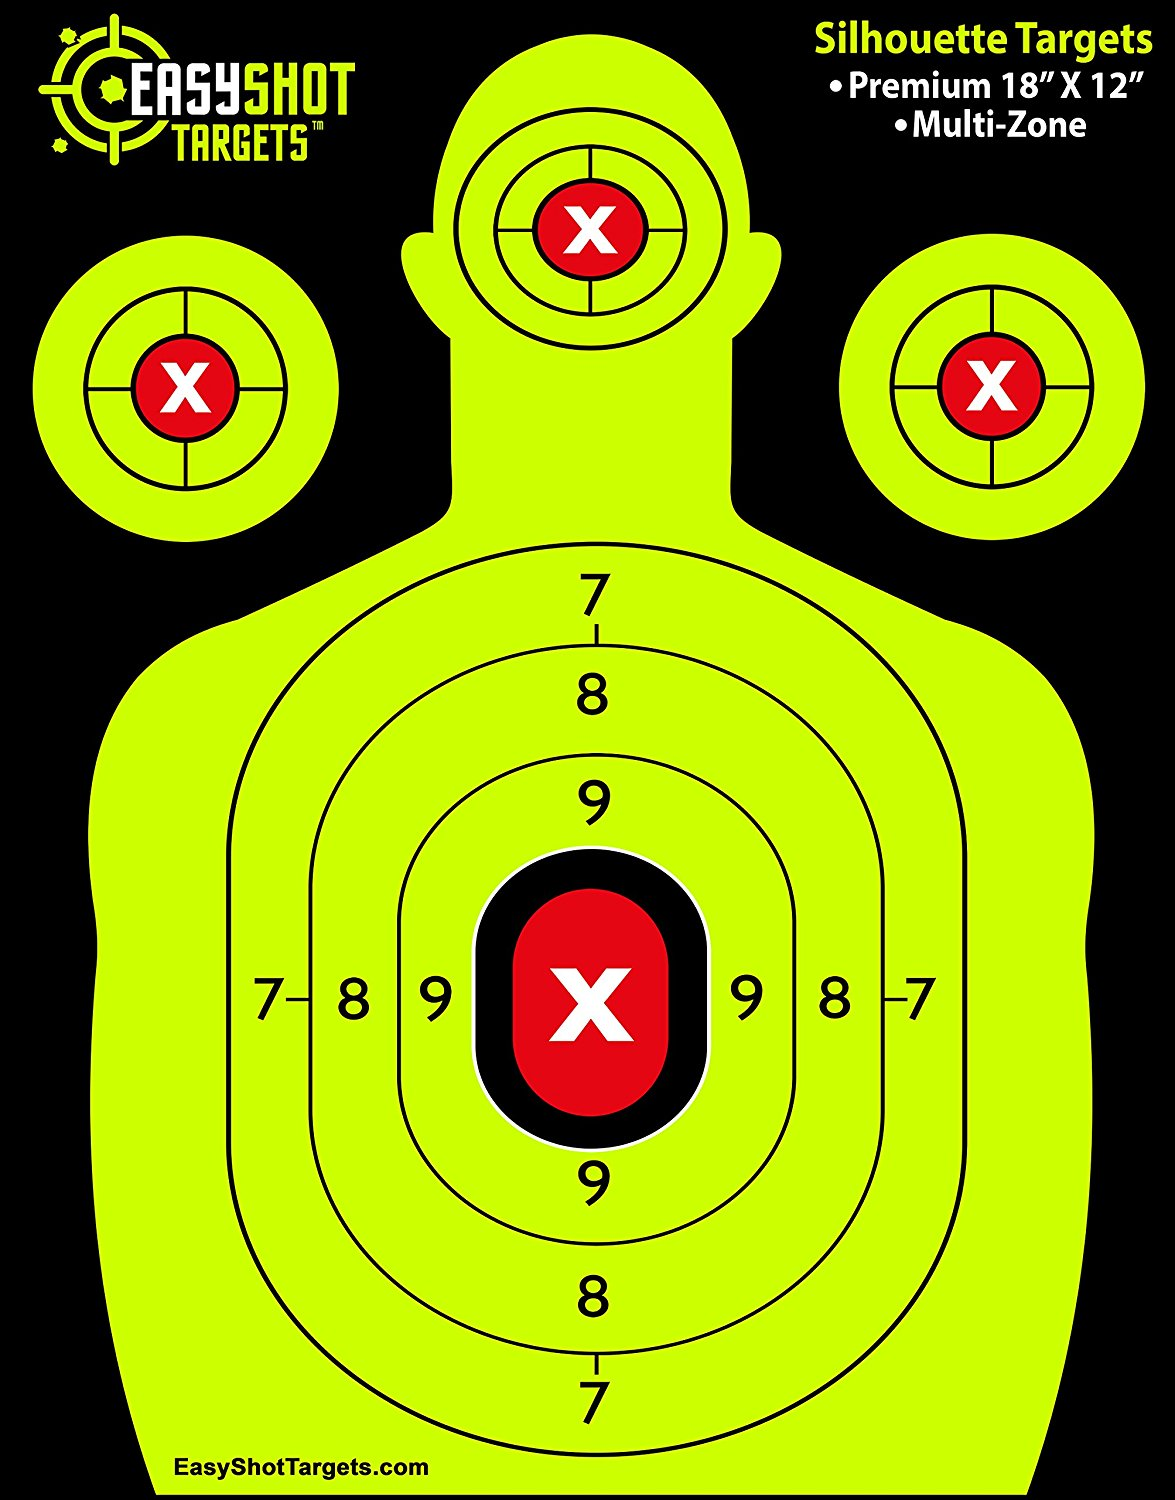 EASYSHOT SHOOTING TARGETS - Green & Red Colors Make it Easy to See Your Shots Land - Heavy-Grade Silhouette Paper Sheets - 150 Free Repair Stickers & EBOOK - Best Value Gun Targets.